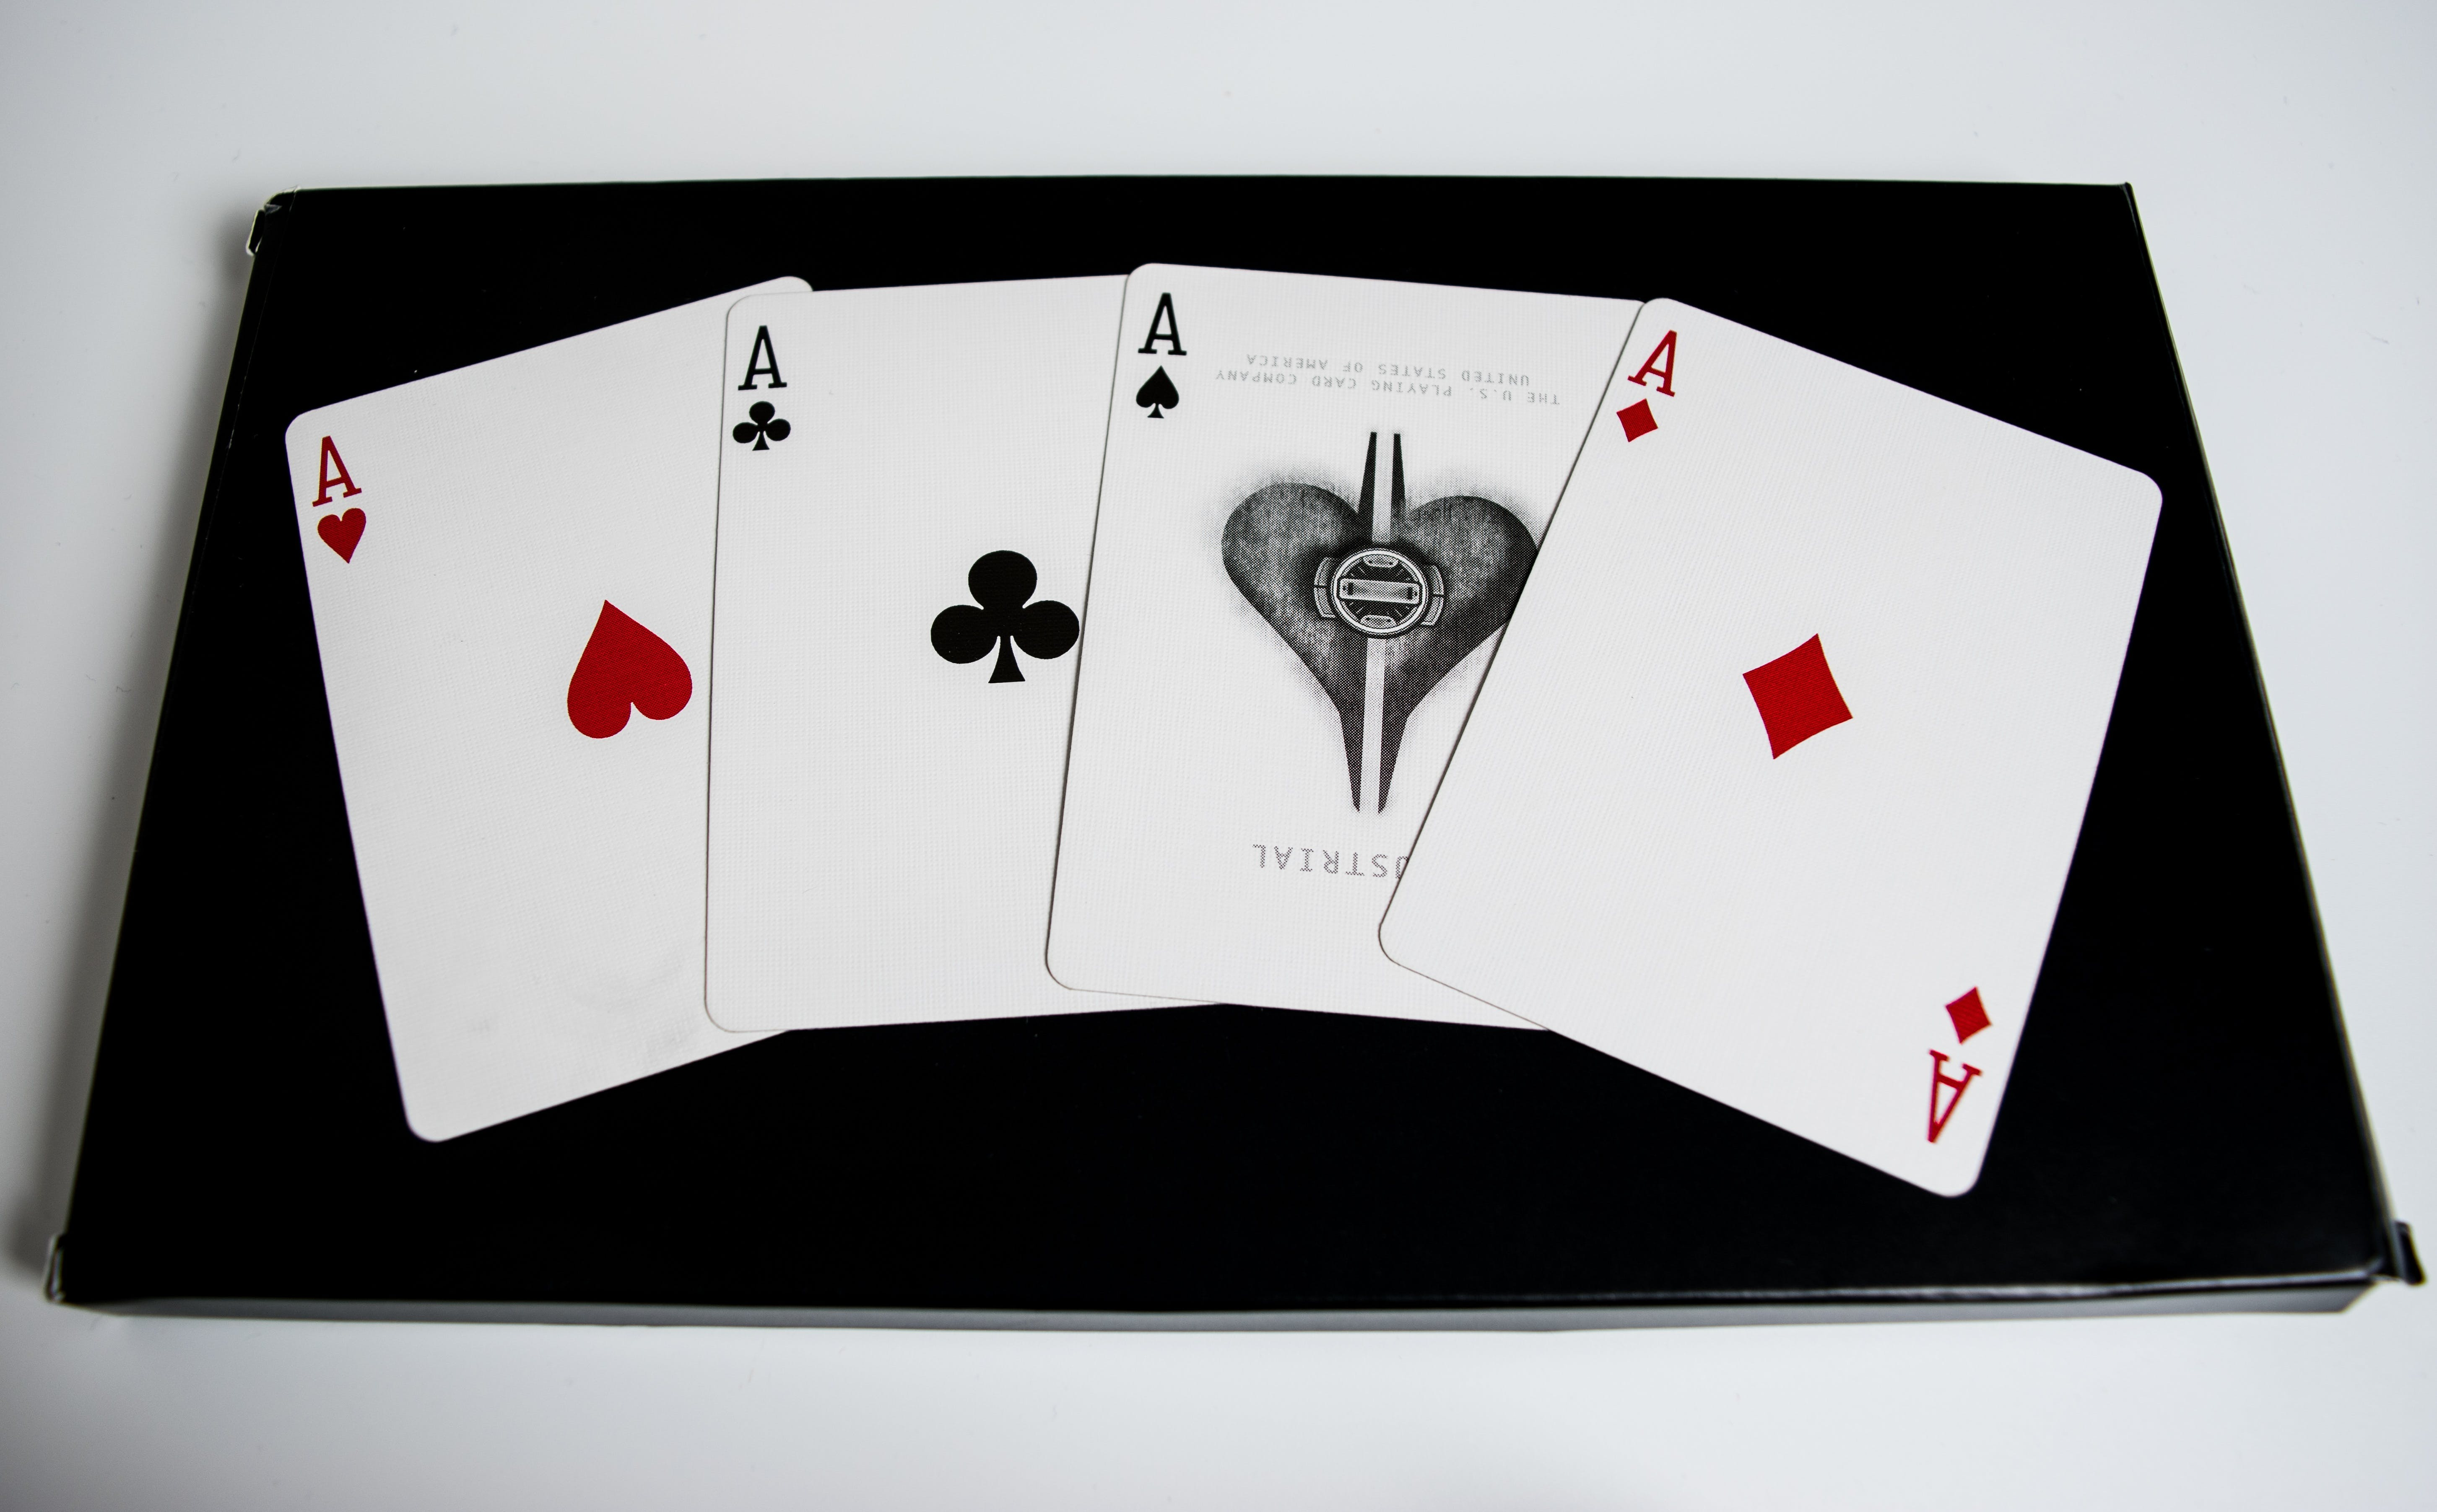 Four Ace Game Cards